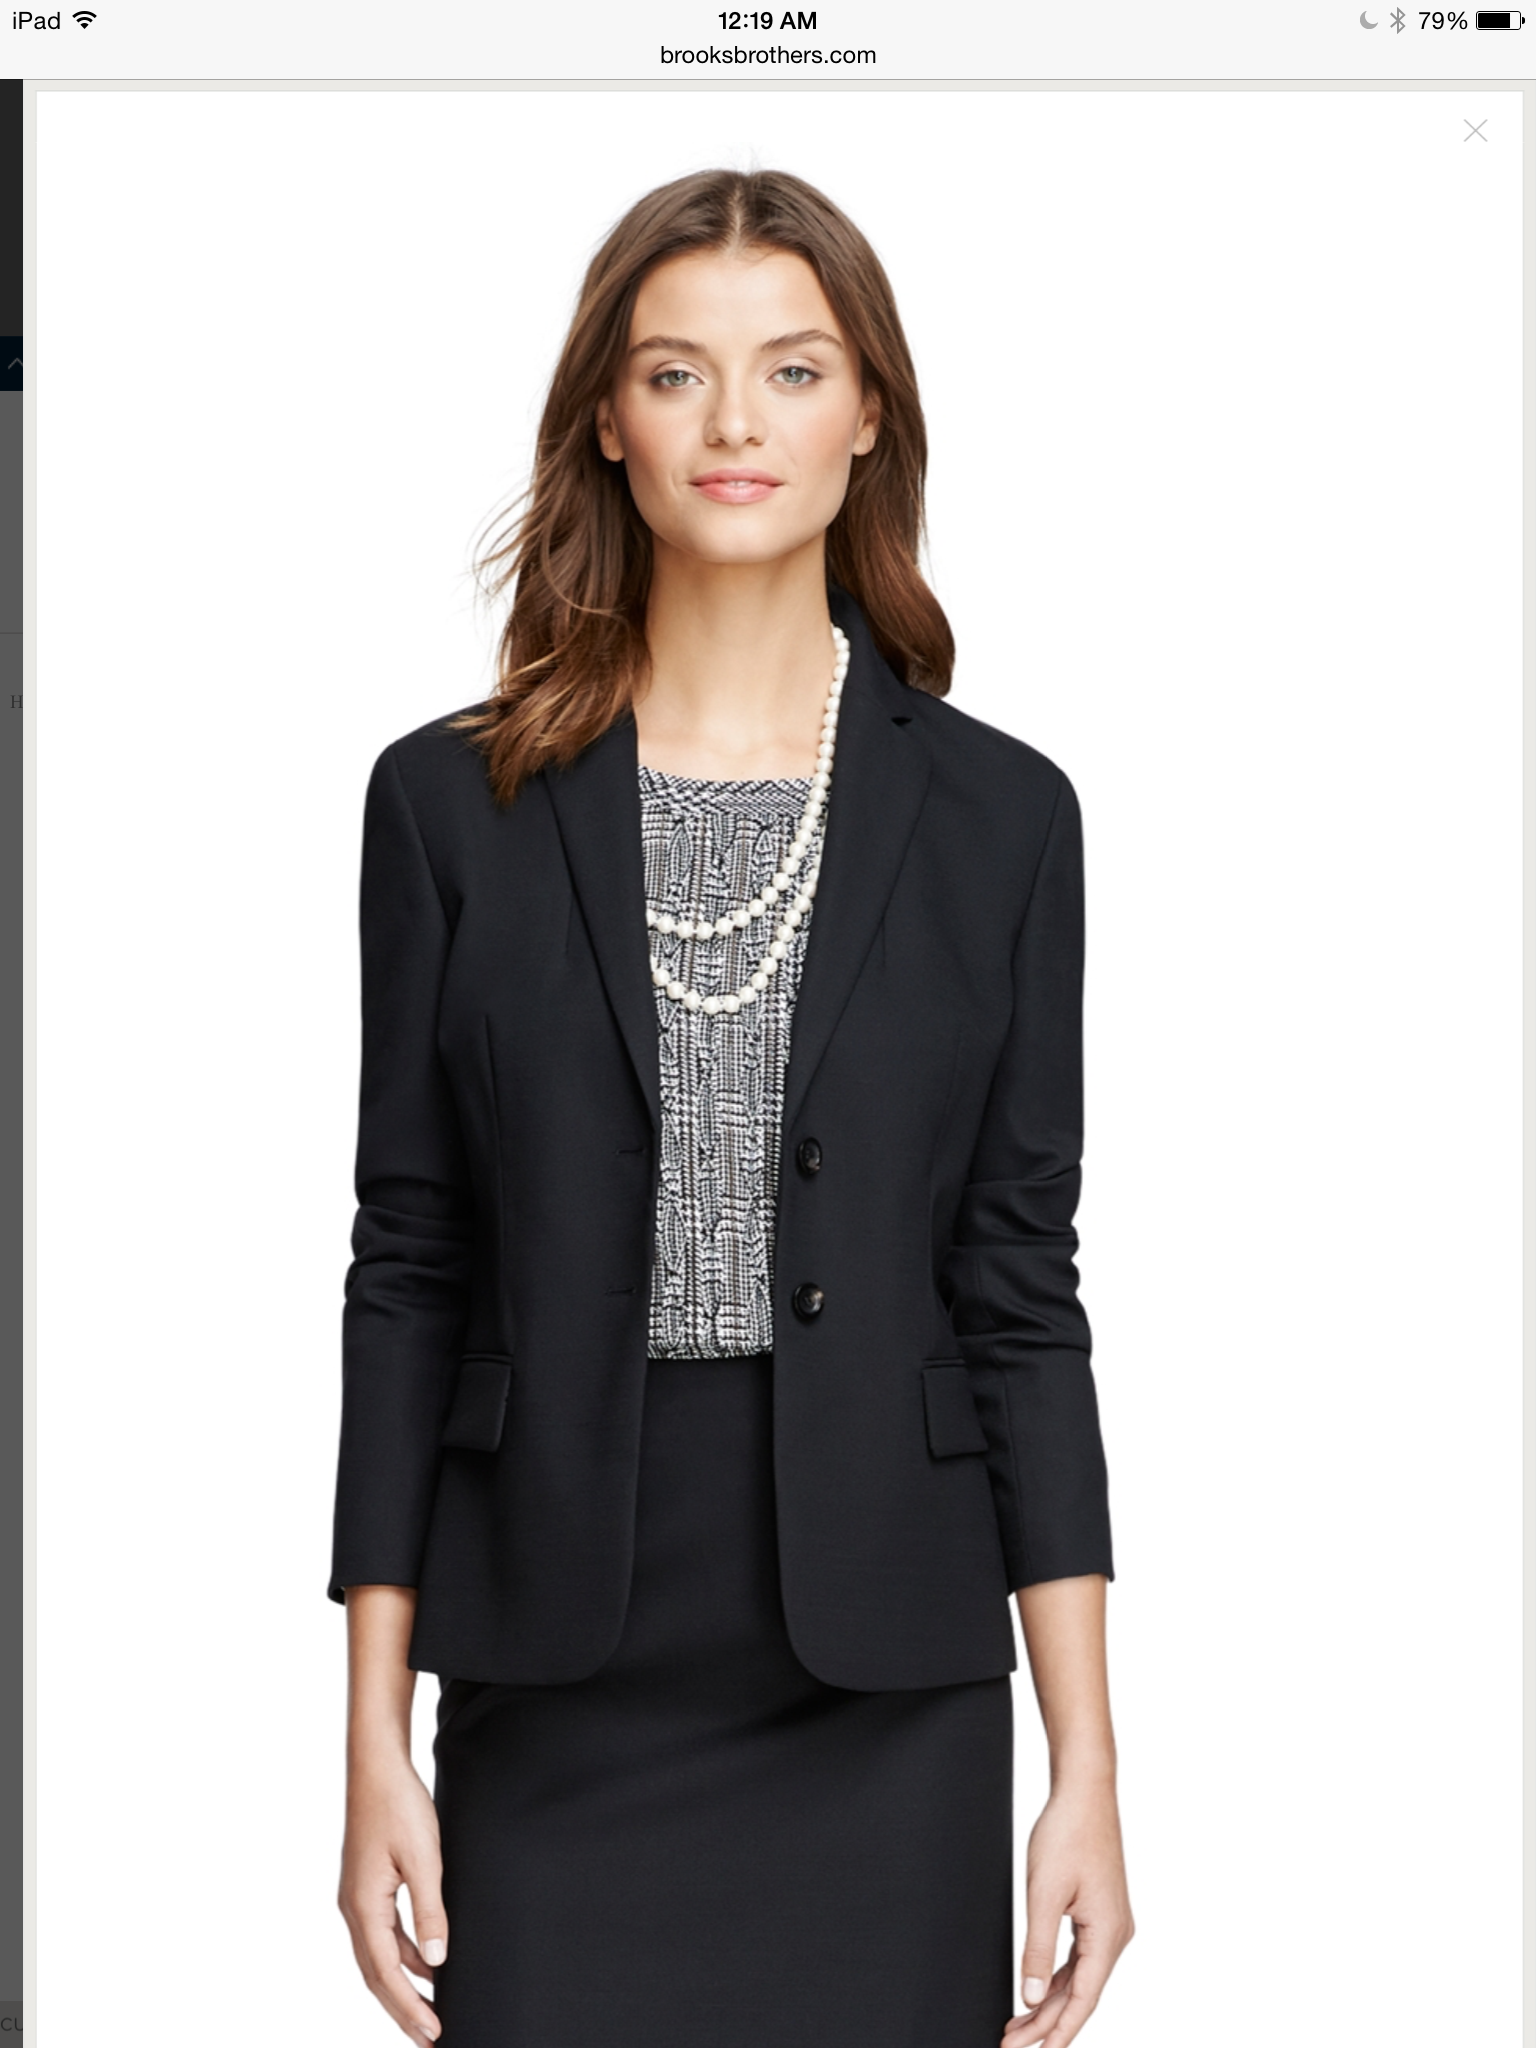 87bf61c1470a Shop Brooks Brothers women s suit sale and take advantage of discount  prices on suiting separates such as pants